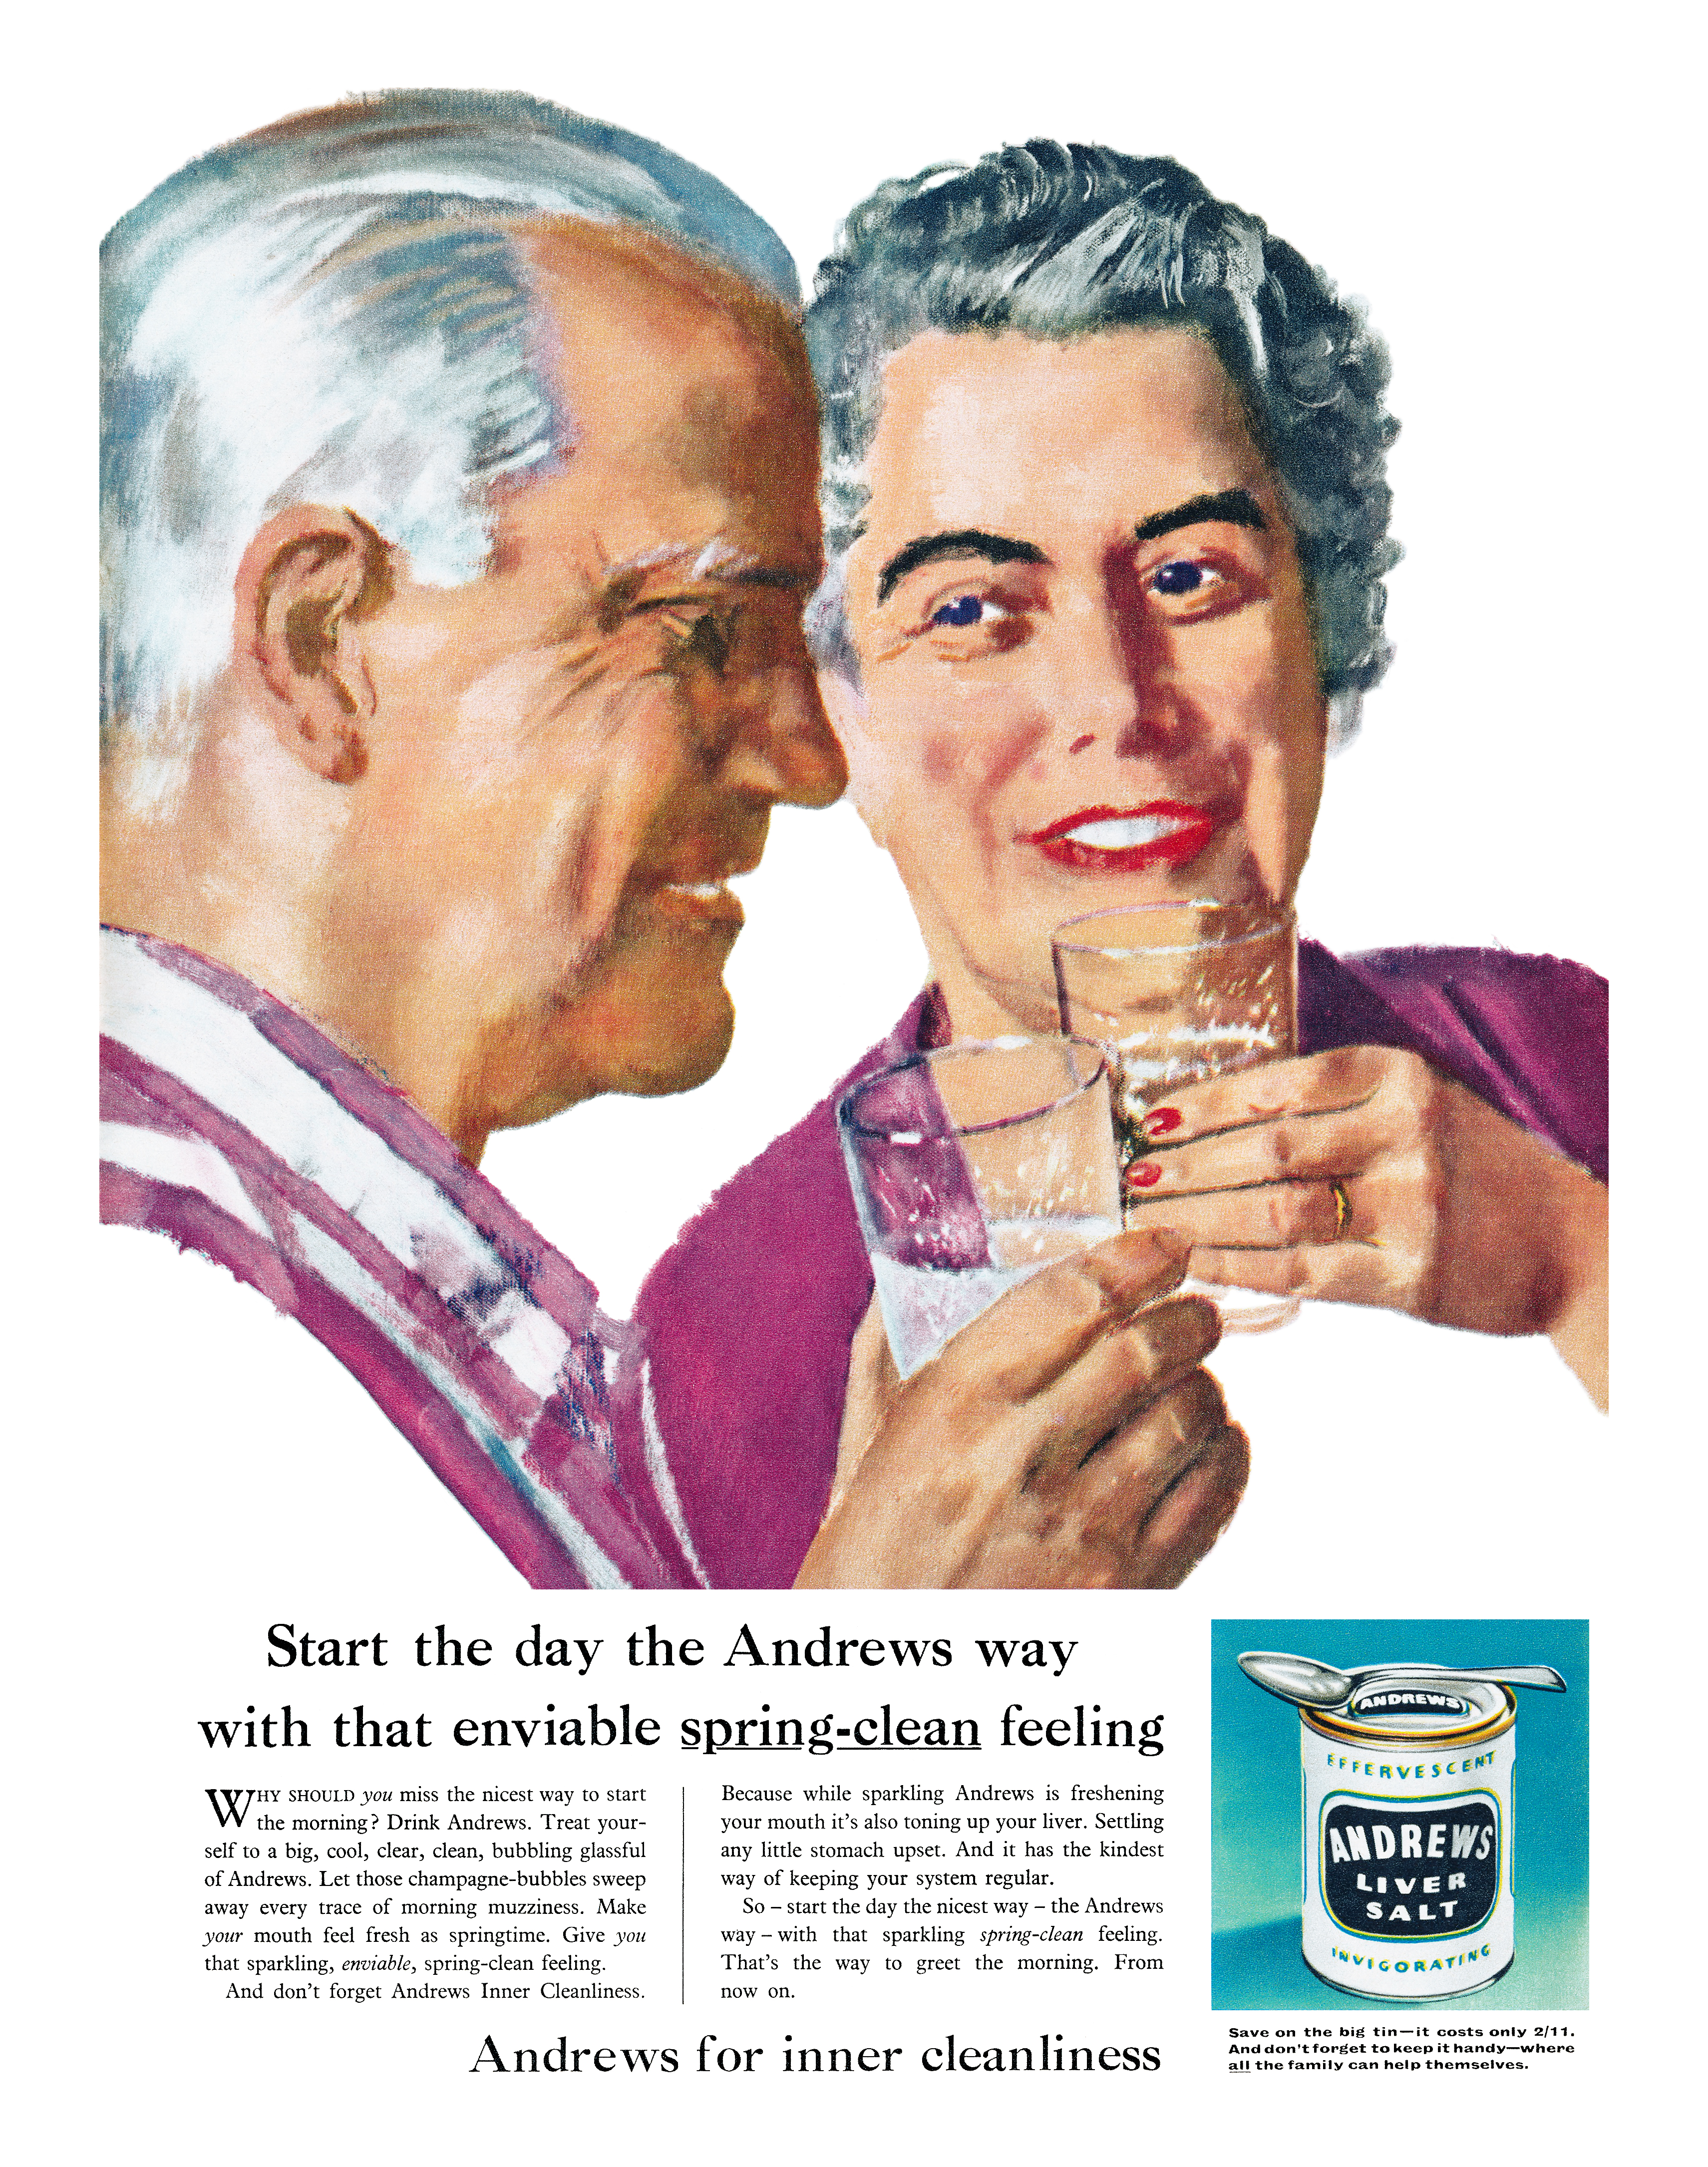 Andrews Liver Salt - 1960